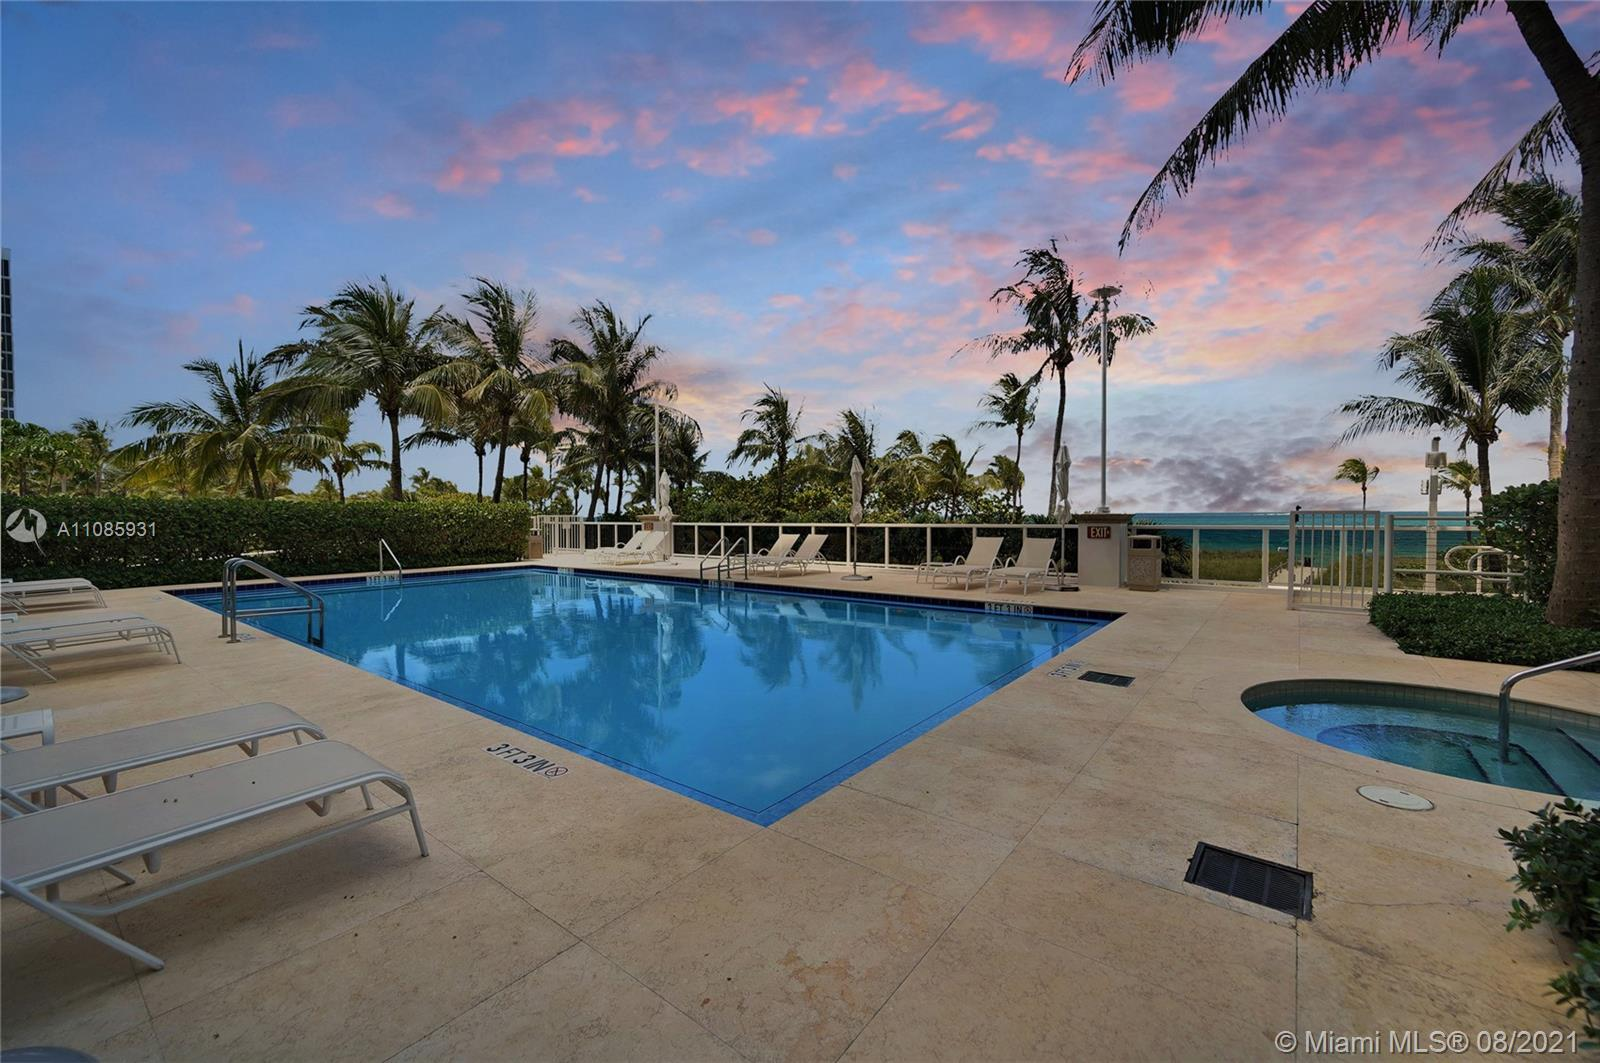 10225 Collins Ave, Unit #703 Luxury Real Estate